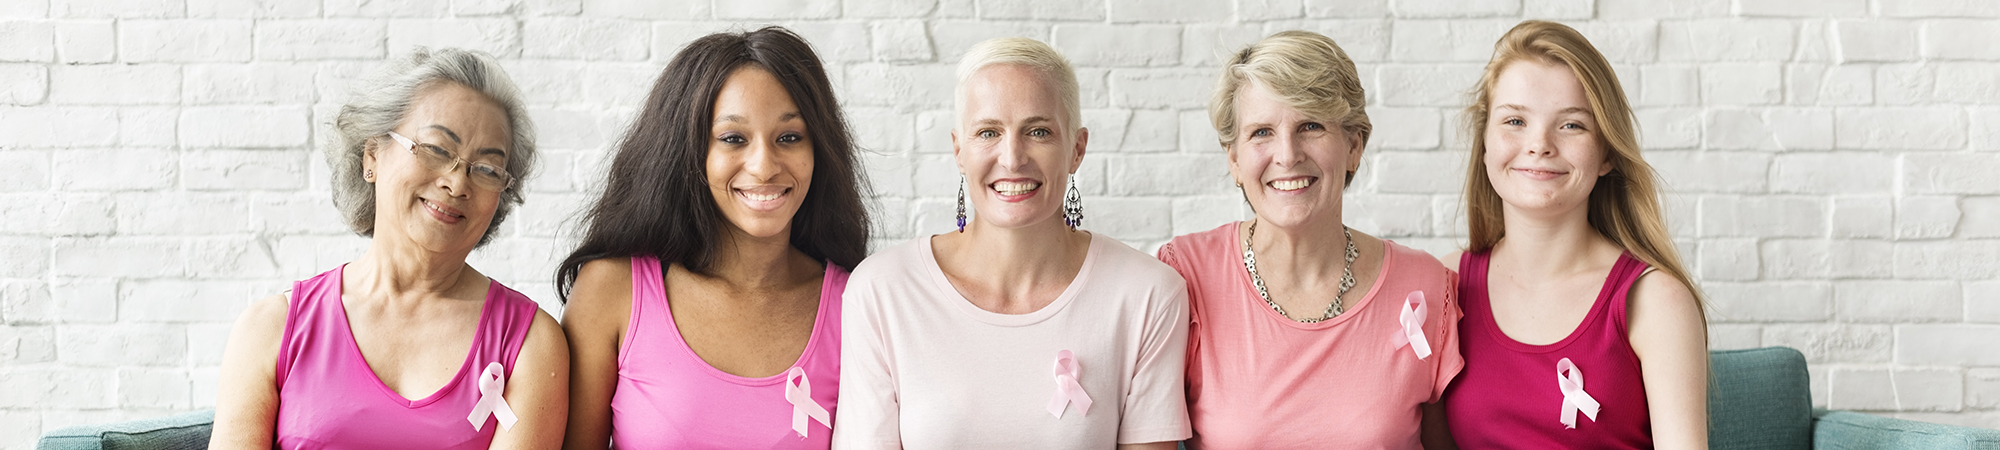 Group of 5 smiling women wearing breast cancer awareness ribbons